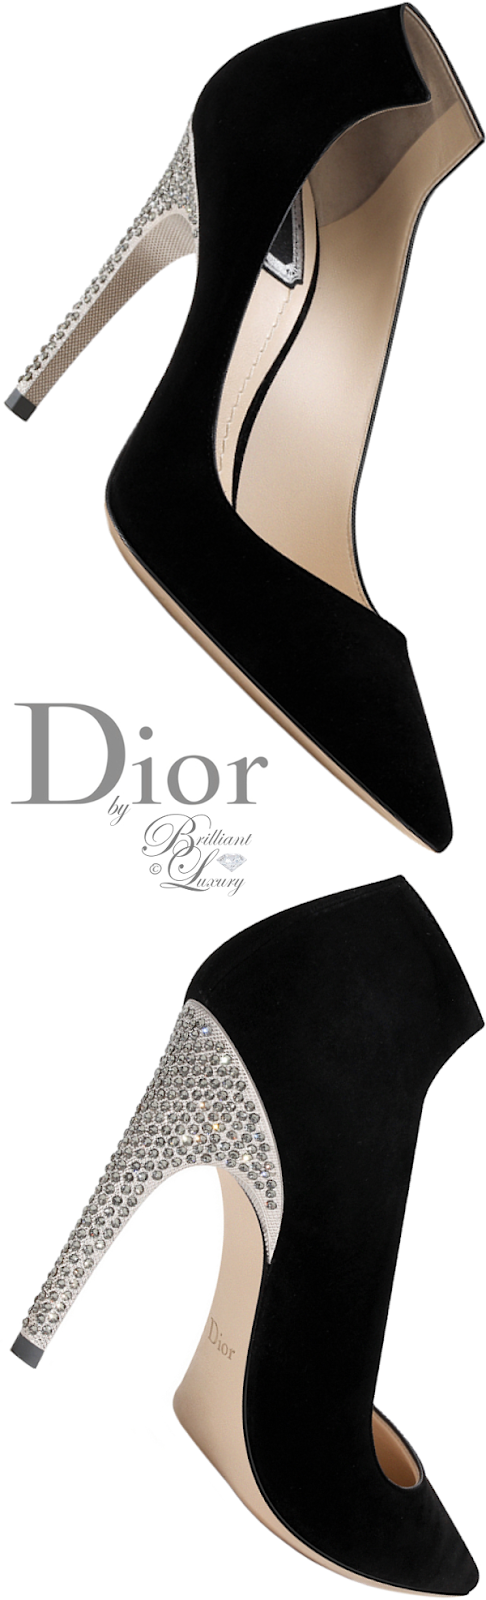 Brilliant Luxury ♦ Dior black suede calfskin pump